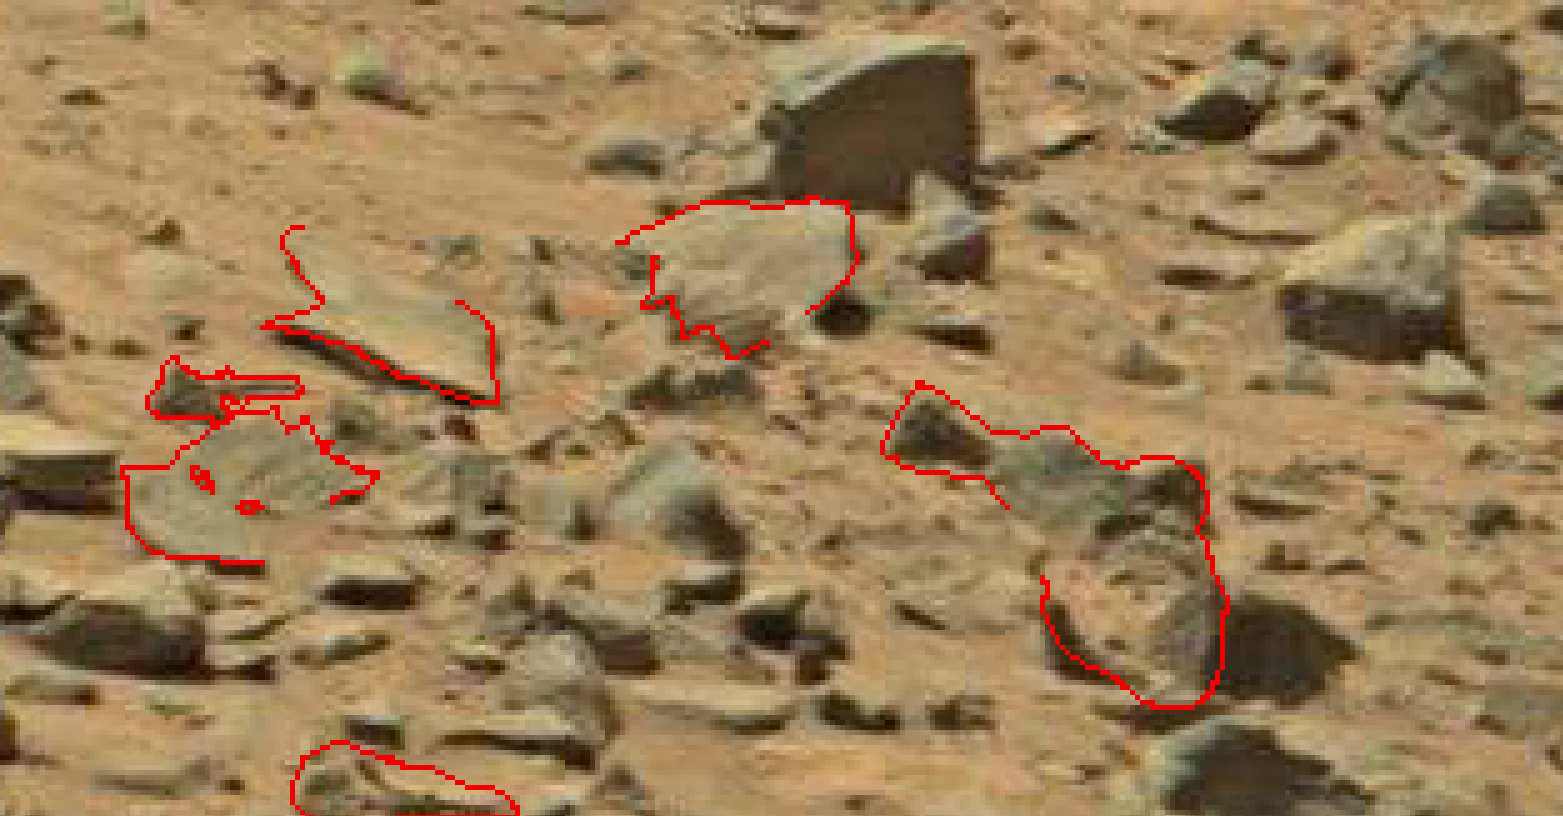 was-life-on-mars-highlighted-areas-enhanced-filter-9a